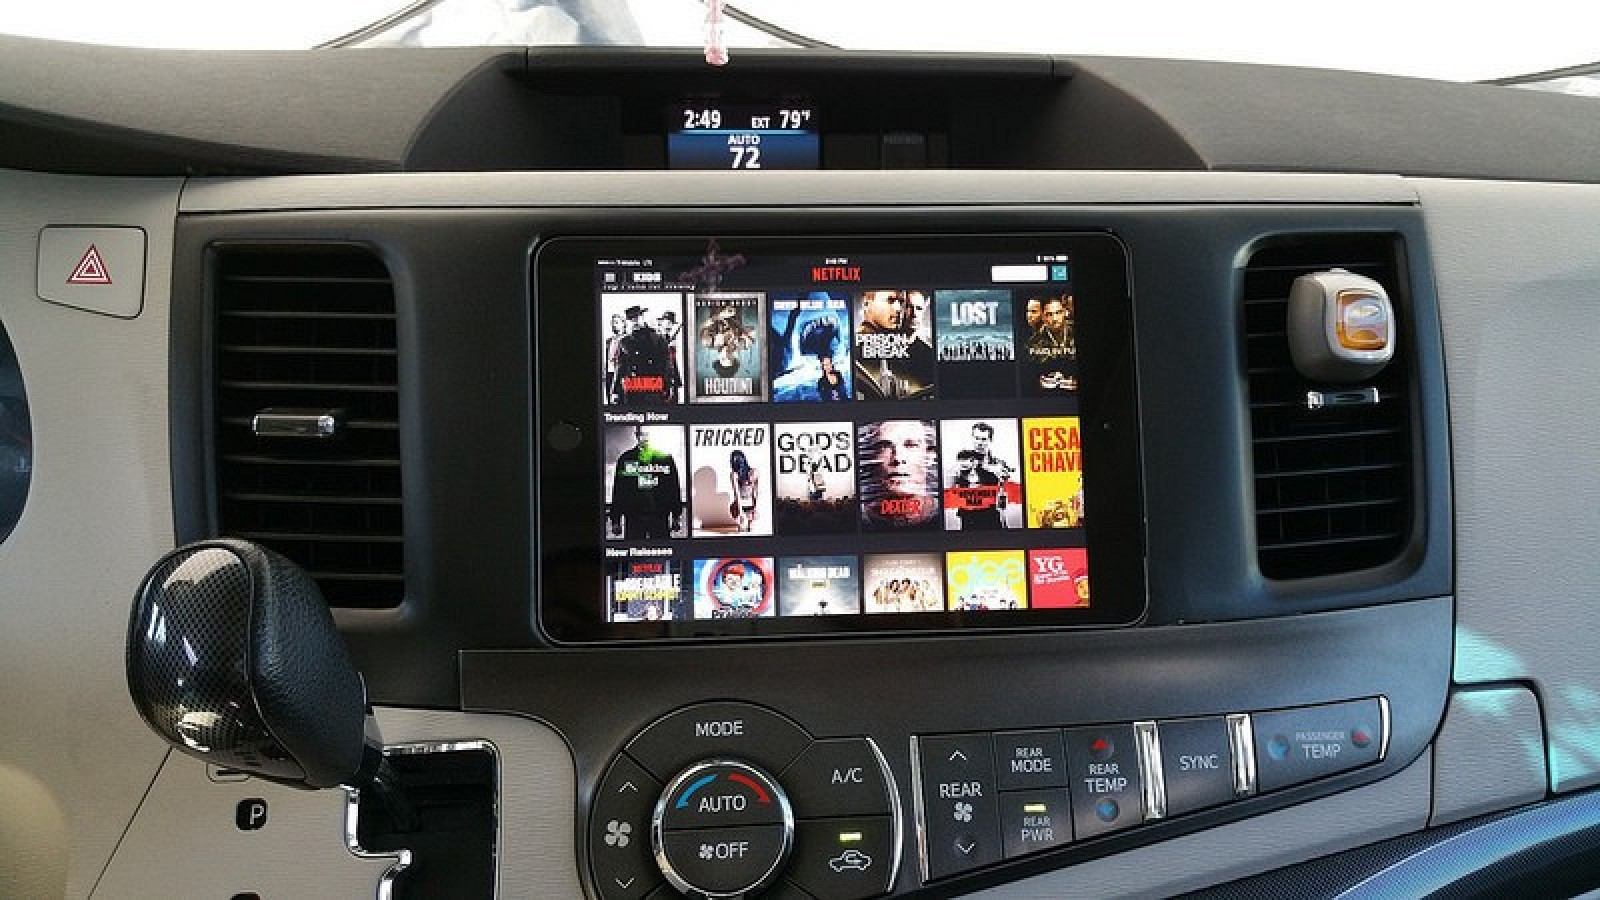 Car Audio Installer Creates Custom Entertainment System Using Ipads